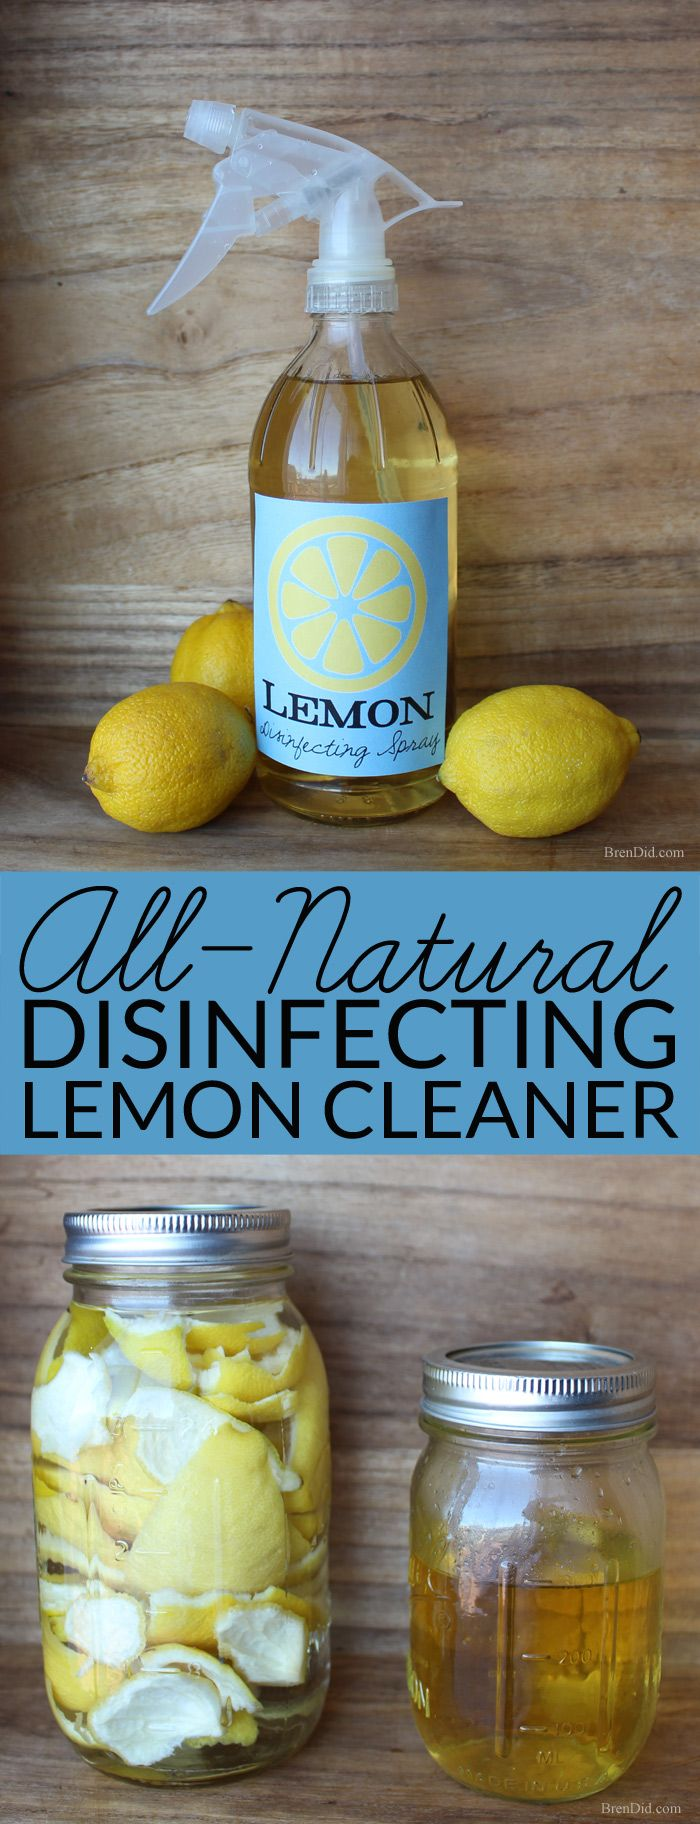 This simple, 2 ingredient all-natural disinfecting spray cleaner helps protect your family from germs all year long.